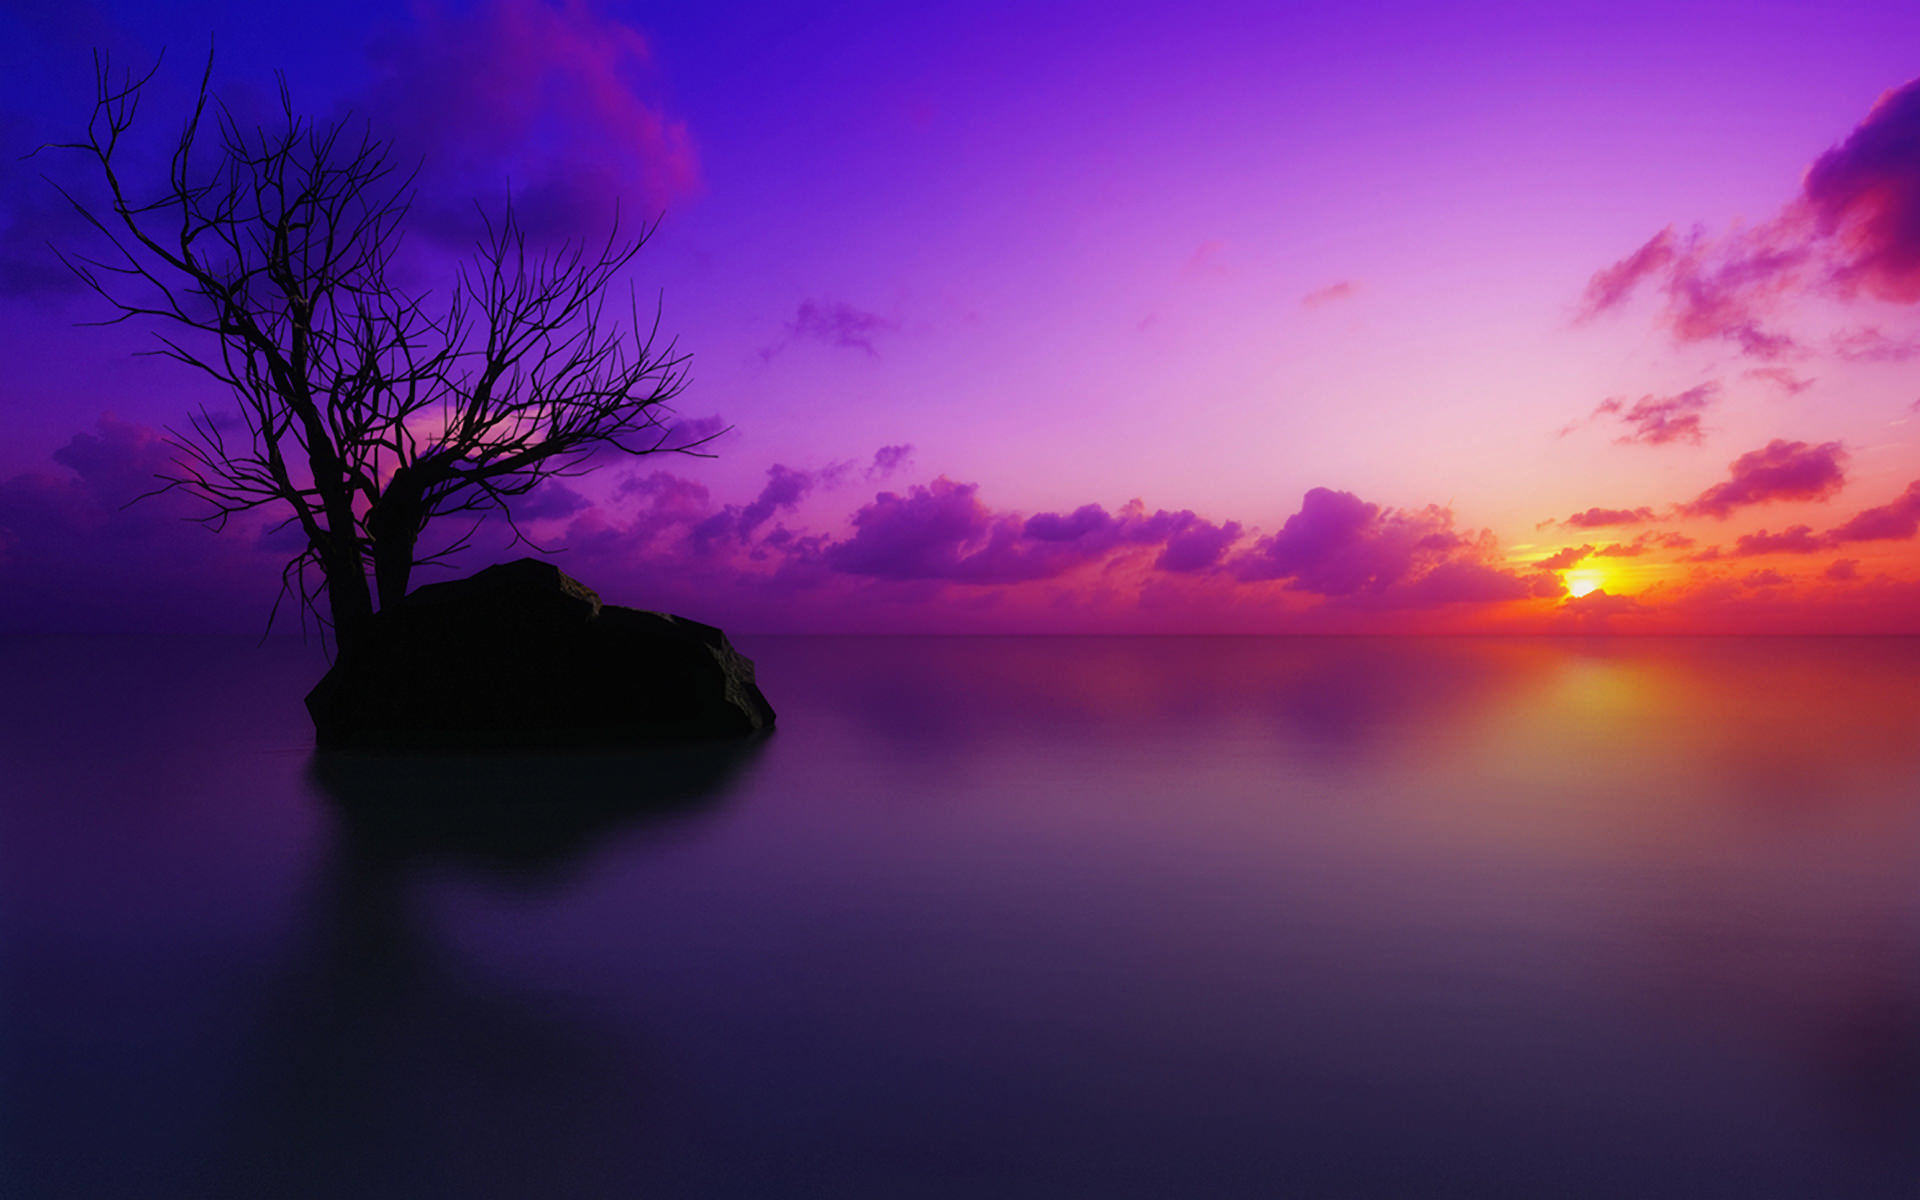 purple sunset wallpaper 1920x1200 1006112jpg 1920x1200